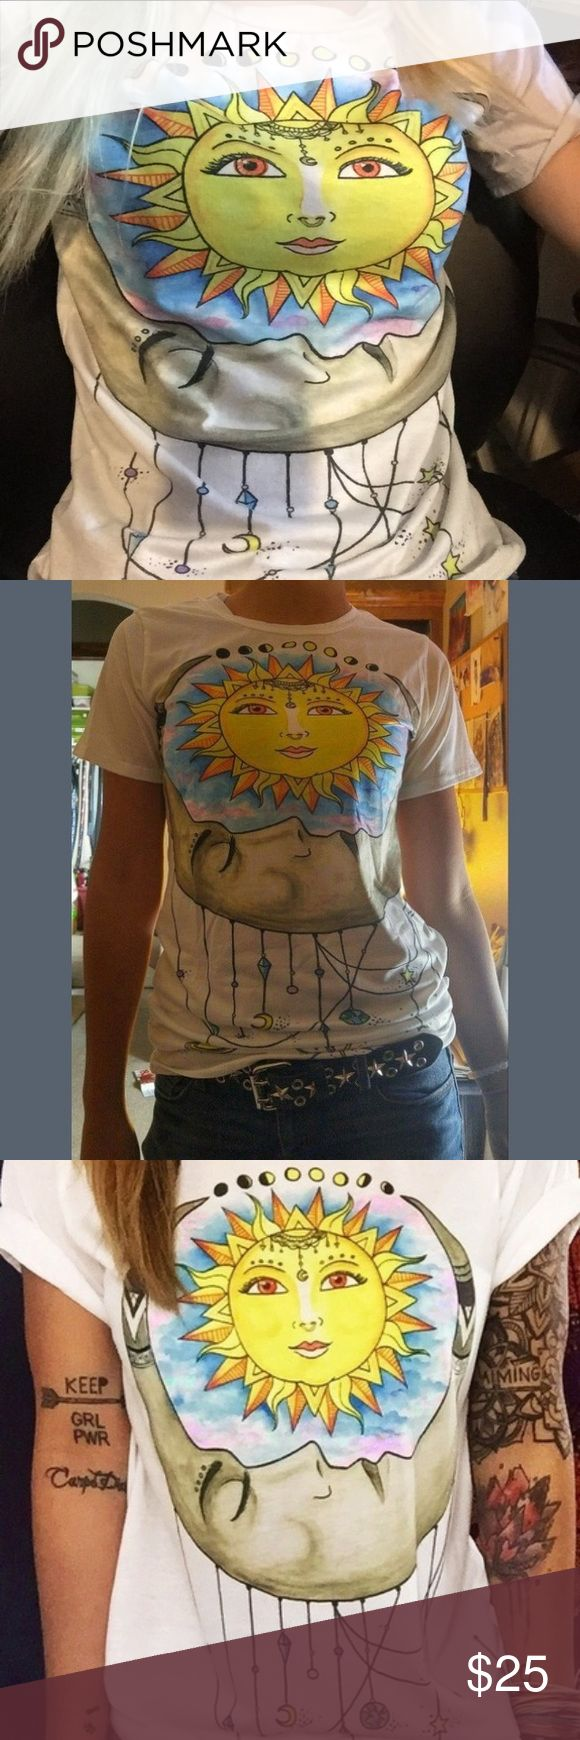 VERY COOL SUN/MOON SS TEE SHIRT. NIP This short sleeve tee is very, very cool. Nice fabric. Not thin. Hip design. Unique. Sizes run a little smaller than US sizes. Use chart when ordering. Brand new from manufacturer. I have sizes M, L, XL, and XXL Tops Tees - Short Sleeve